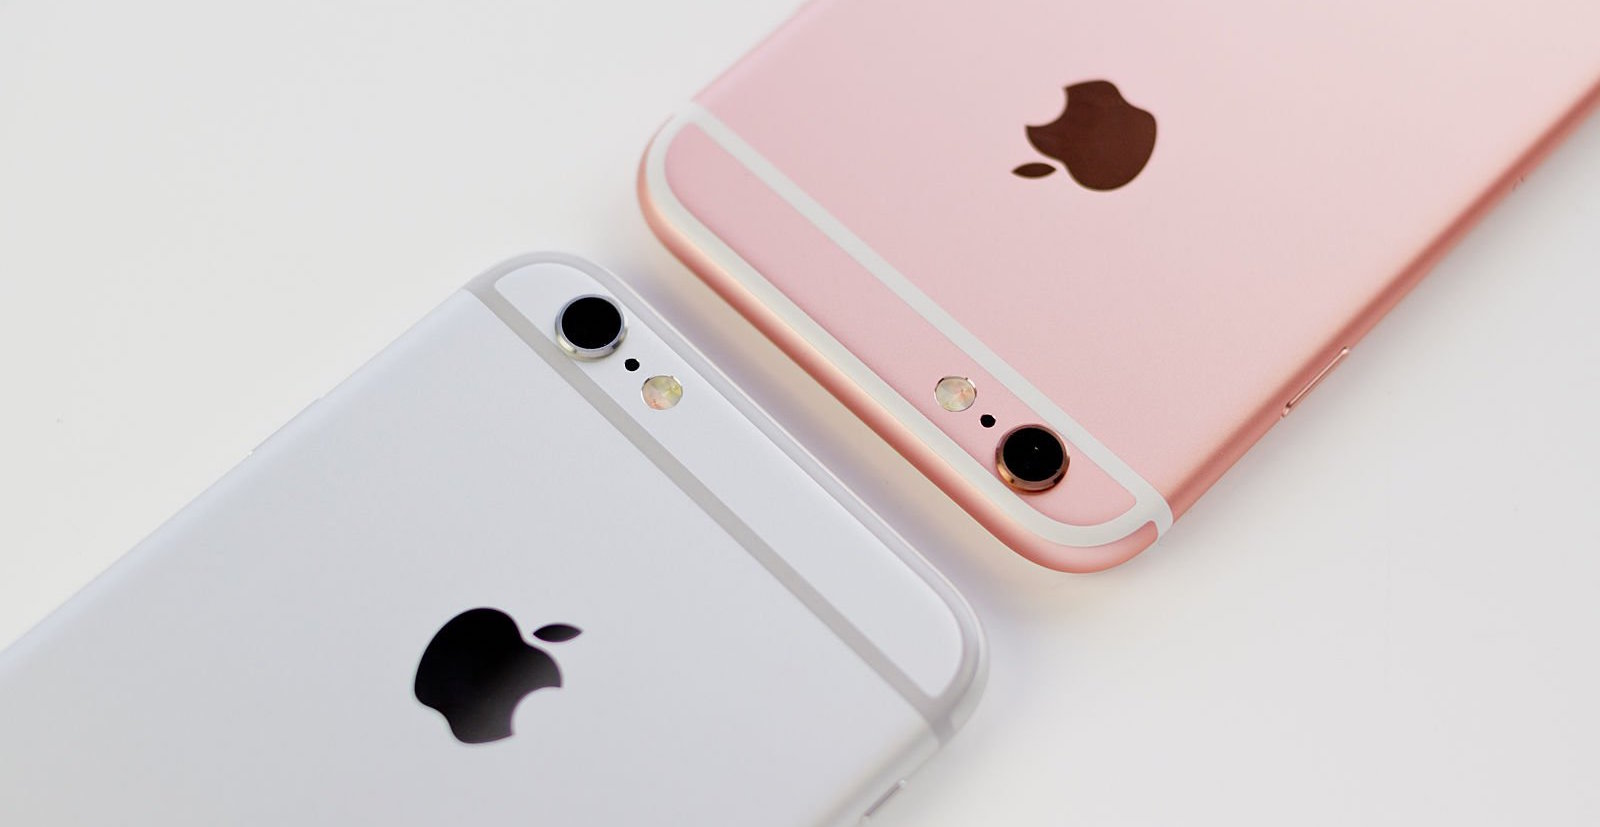 Where is cheaper to buy an iPhone in Russia: April 2016